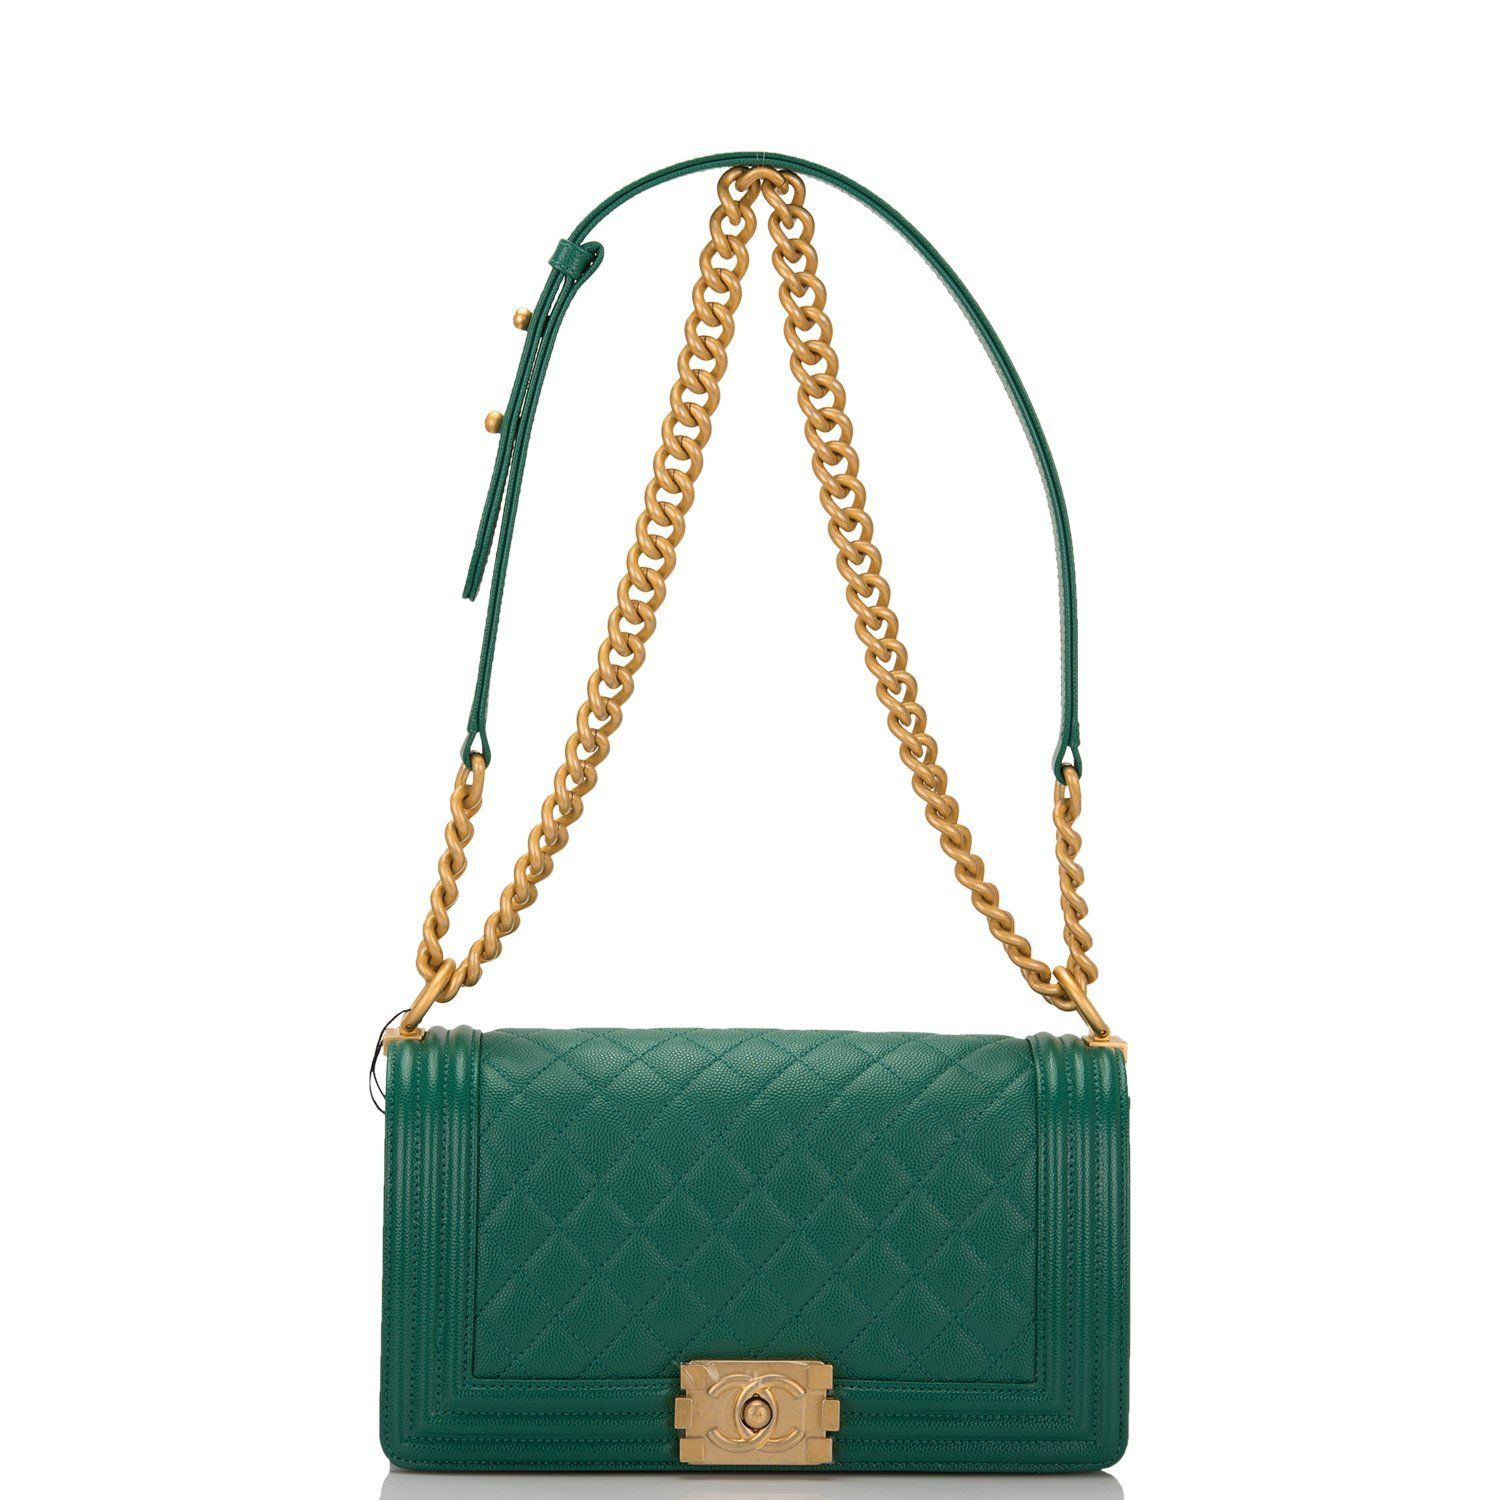 b53887d68f71 Chanel Green Caviar Quilted Medium Boy Bag in 2018